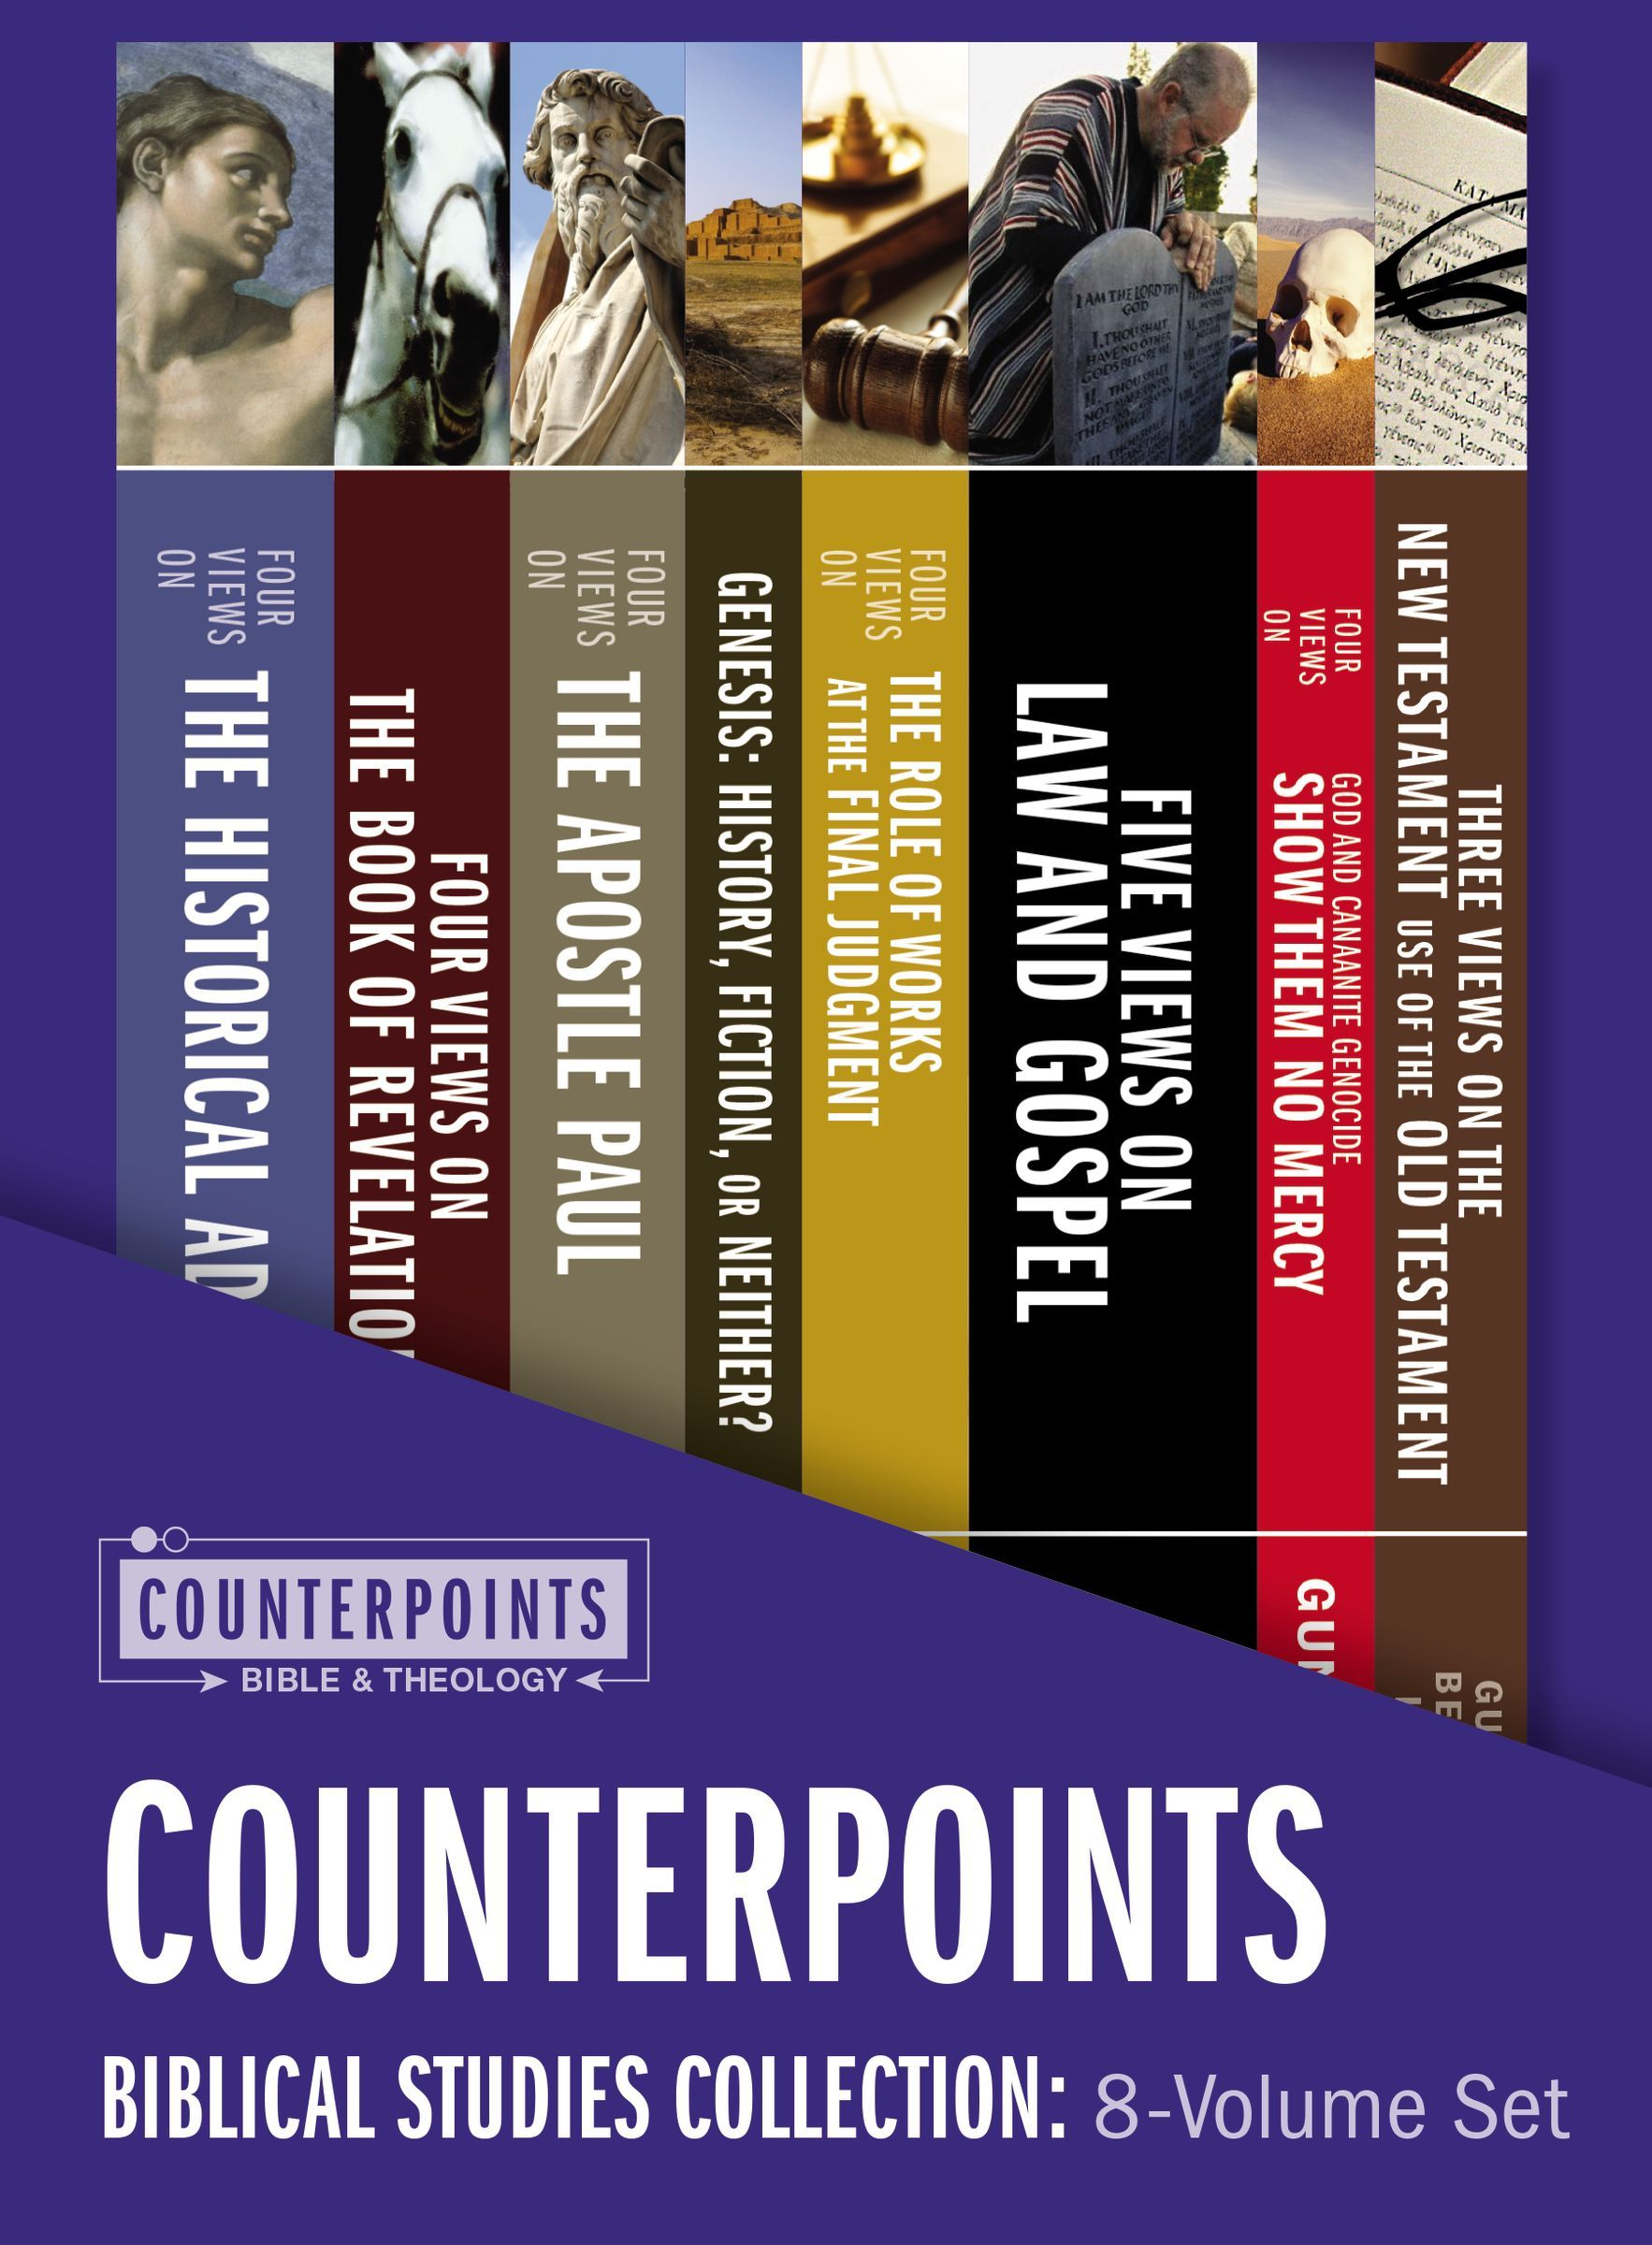 Counterpoints Biblical Studies Collection: 8-Volume Set: Resources for Understanding Controversial Issues in the Bible Stanley N. Gundry